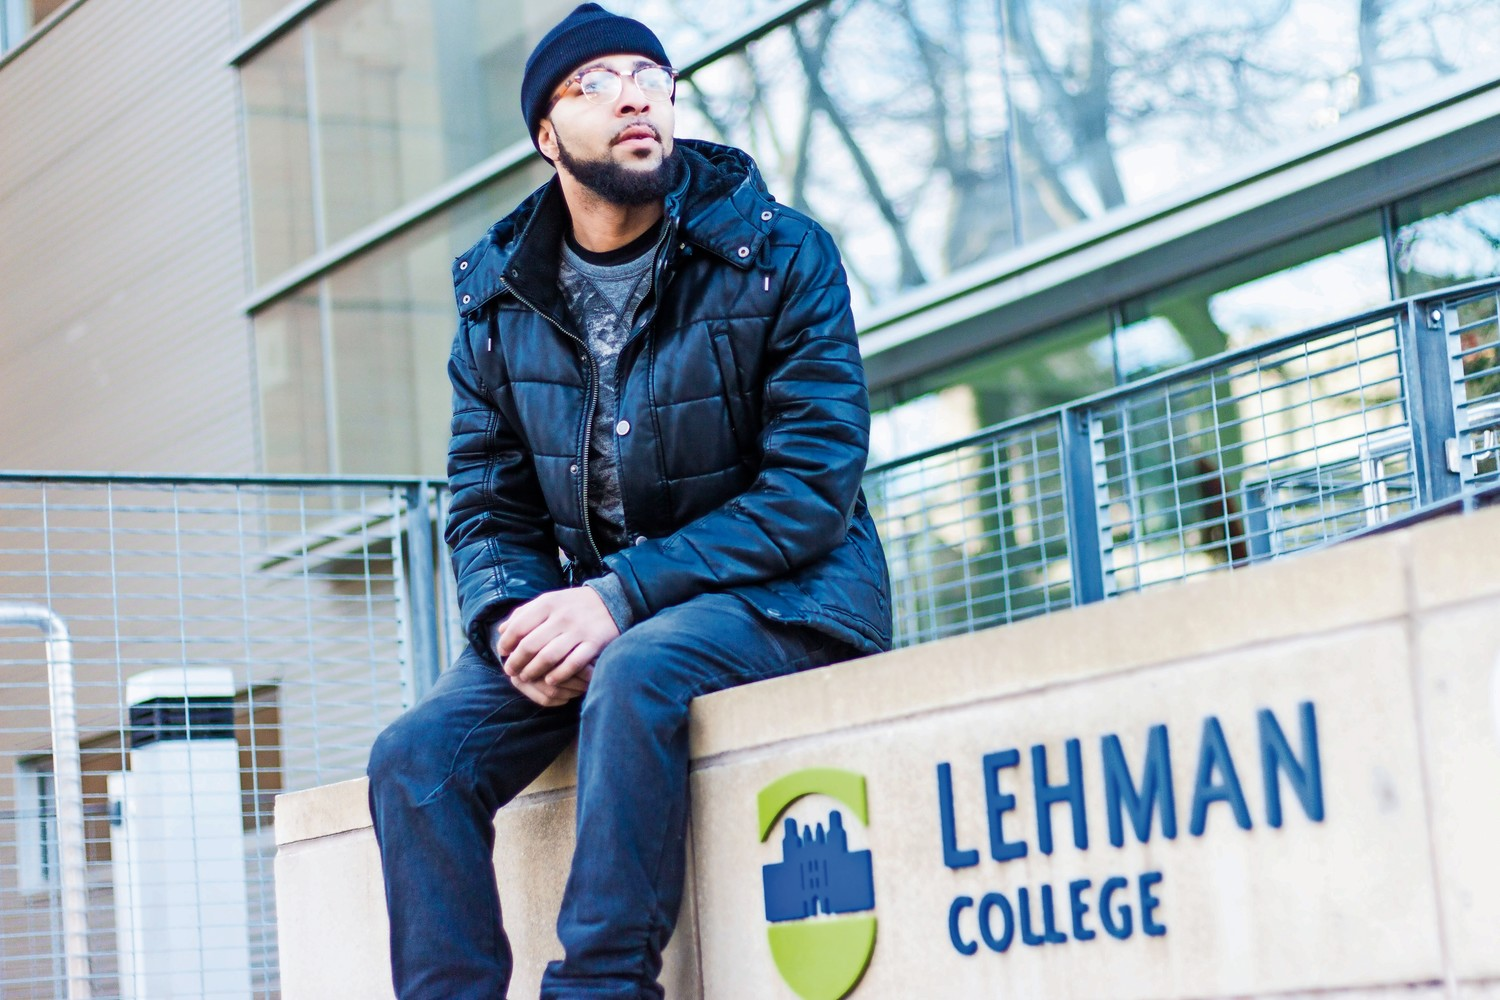 Damian Stapleton was one of several former inmates at Rikers Island featured in the documetary film 'Rikers: An American Jail.' He also spoke at Lehman College on Feb. 28 as part of a panel on mass incarceration.